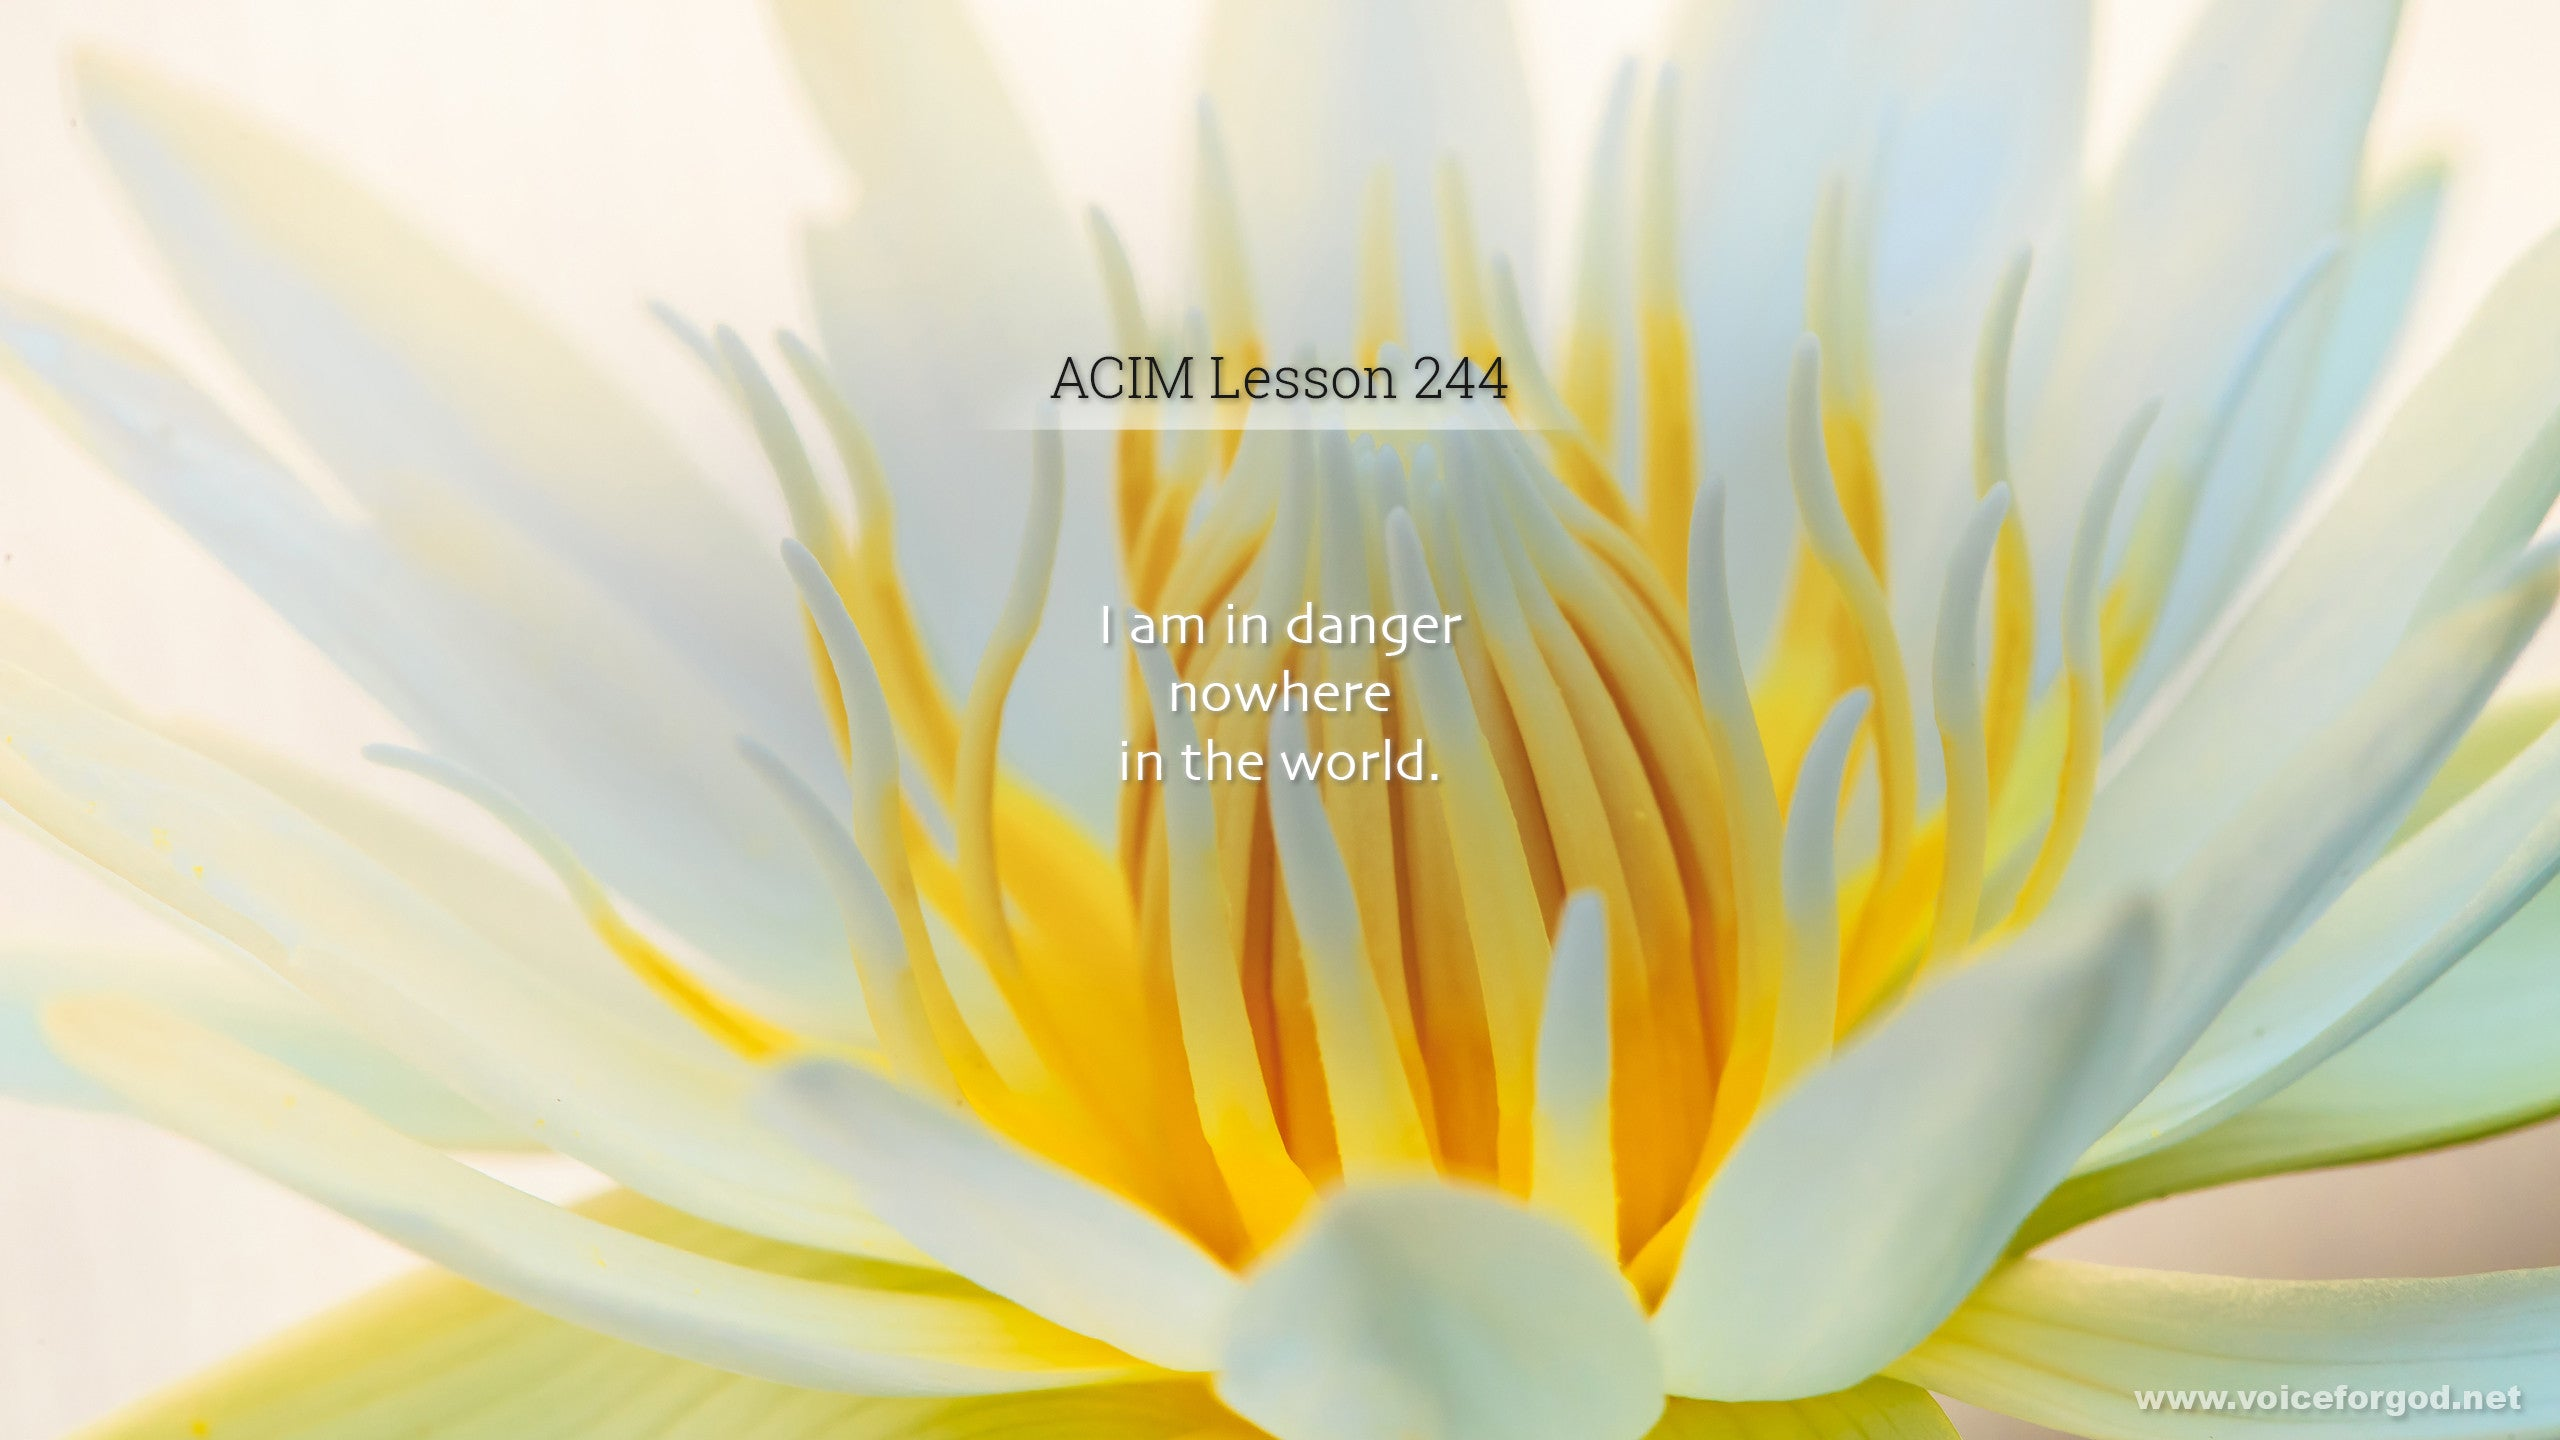 ACIM Lesson 244 - A Course in Miracles Workbook Lesson 244